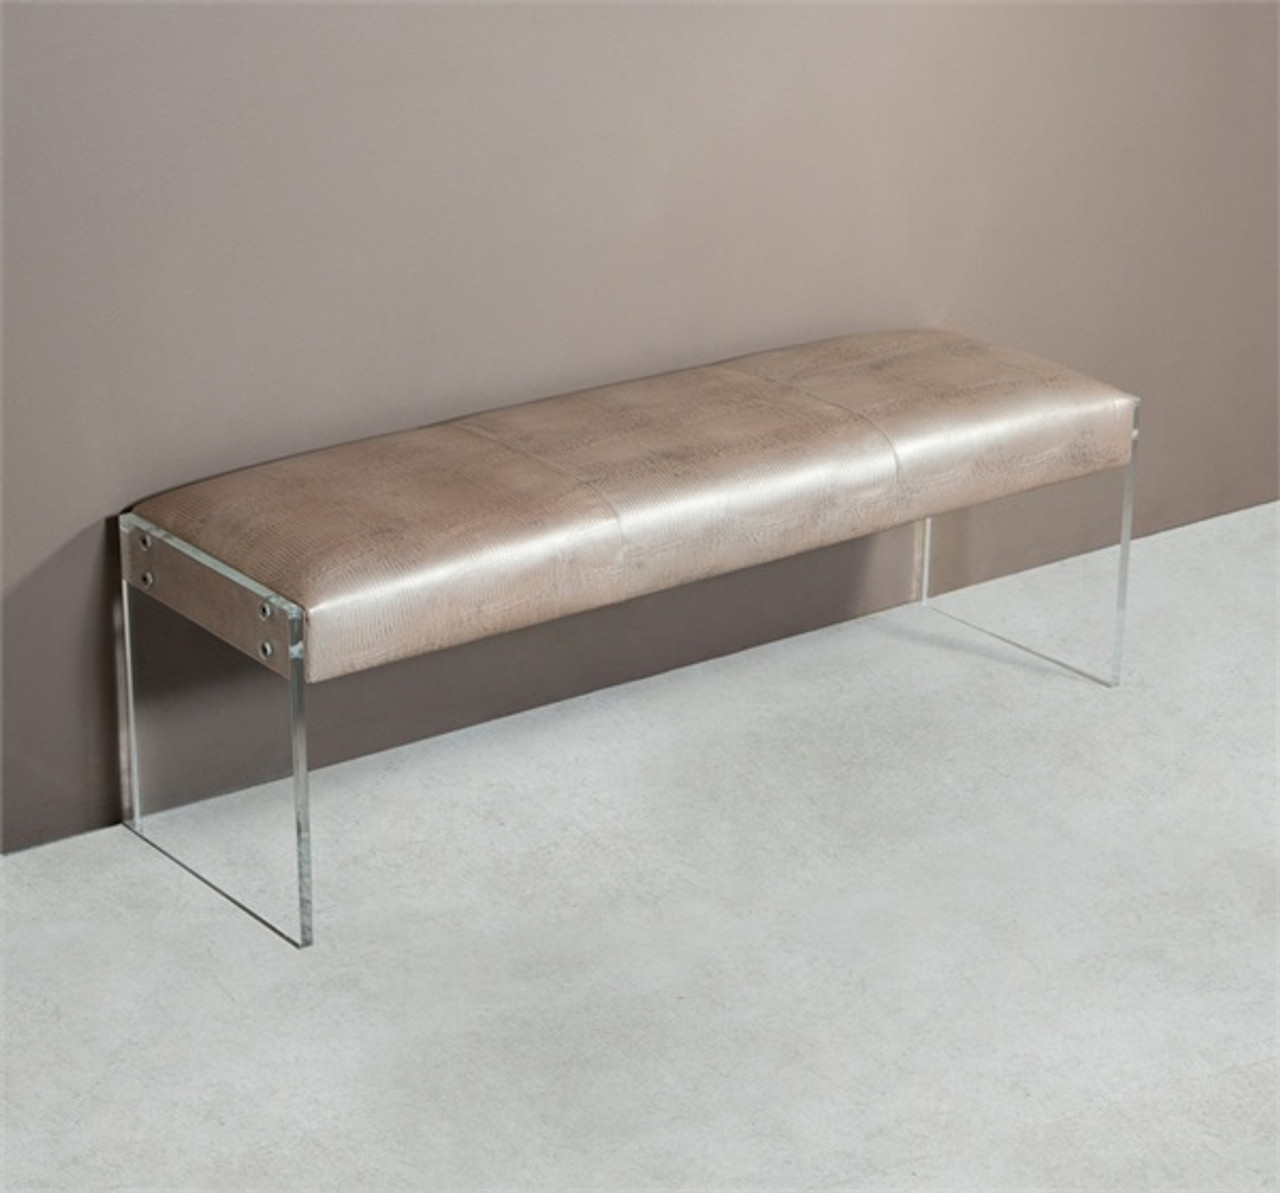 nori champagne lizard leather bench with acrylic legs zin home. Black Bedroom Furniture Sets. Home Design Ideas